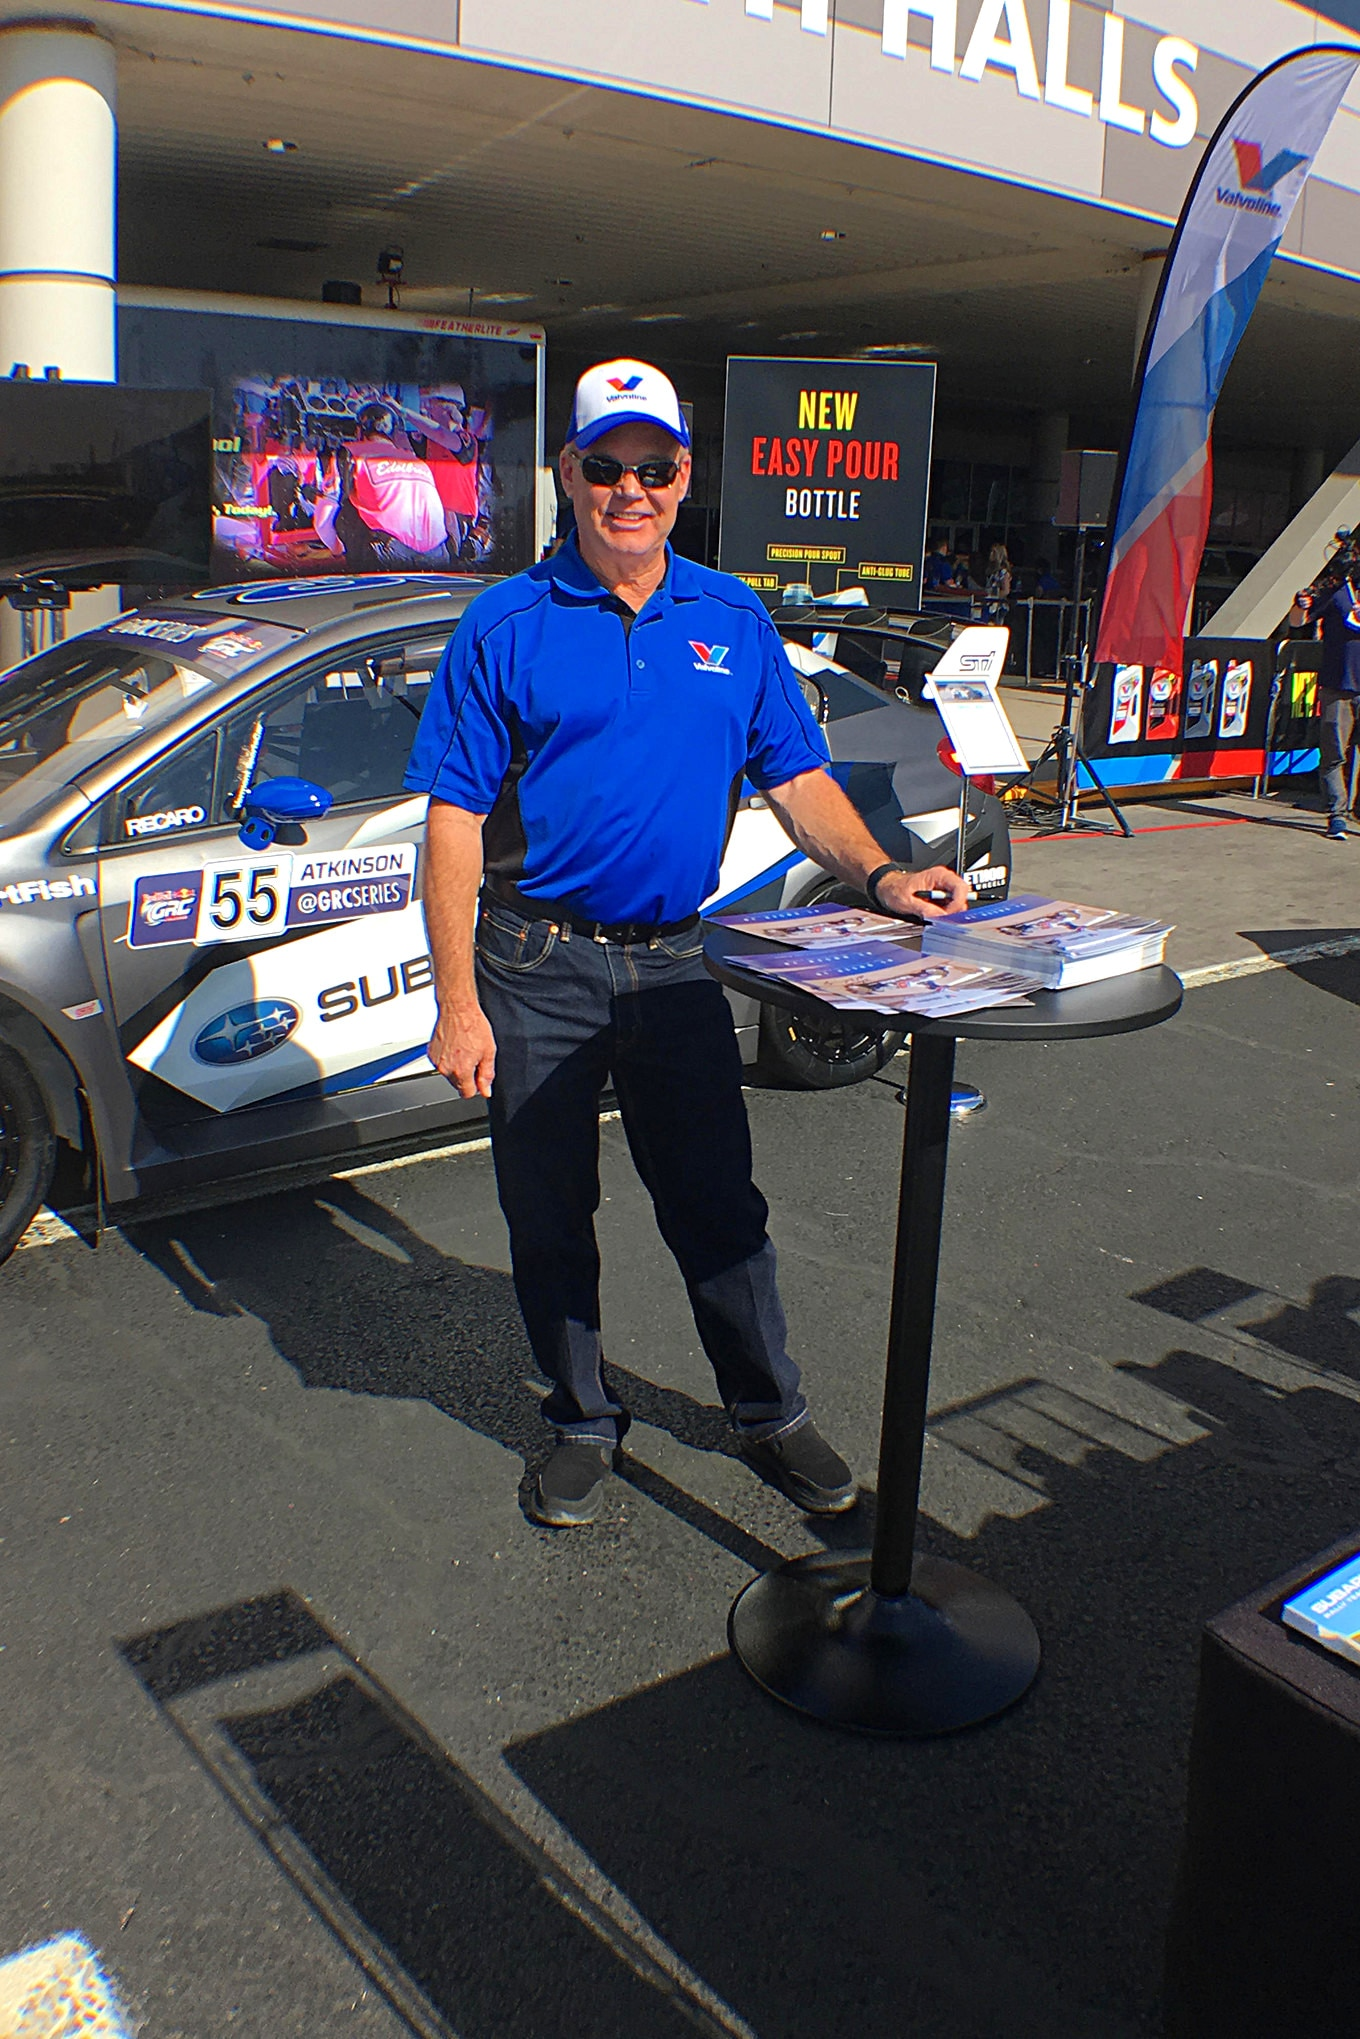 Al Unser Jr. was on hand signing autographs. Maybe next year Valvoline will get him an E-Z Up so he doesn't have to stand out in the sun.